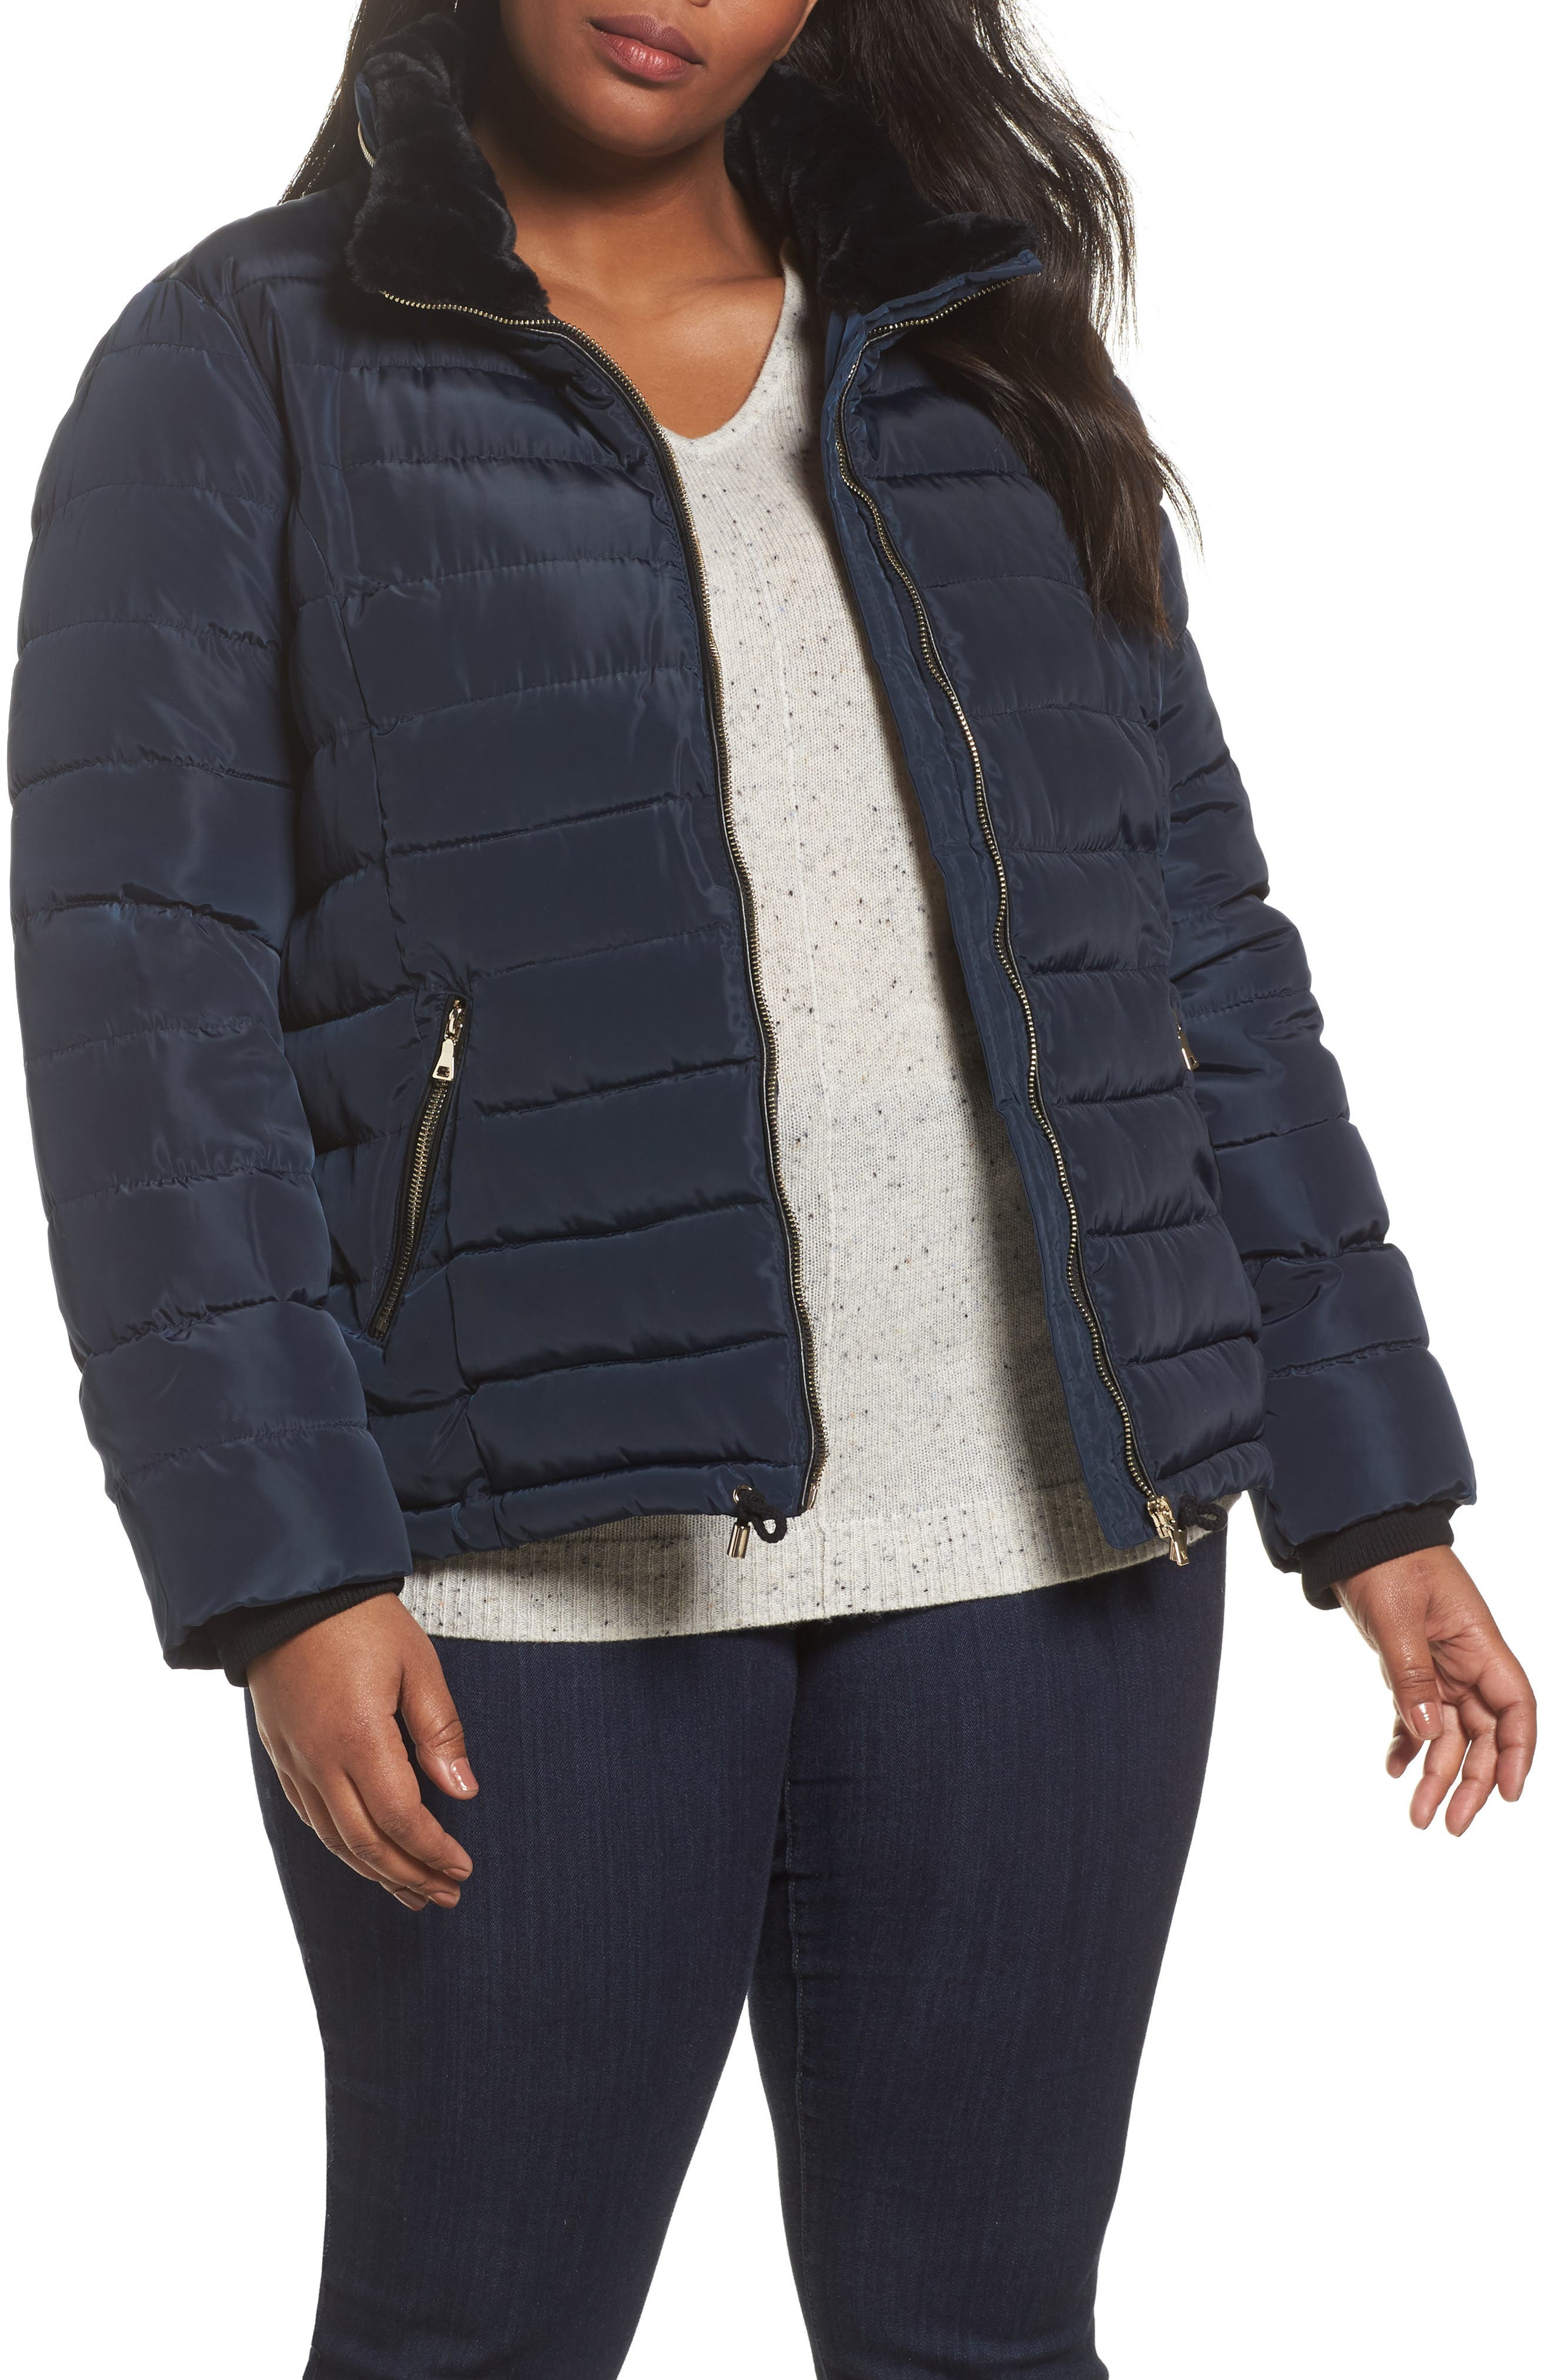 Alternate Image 1 Selected - Dorothy Perkins Faux Fur Trim Hooded Puffer Jacket (Plus Size)